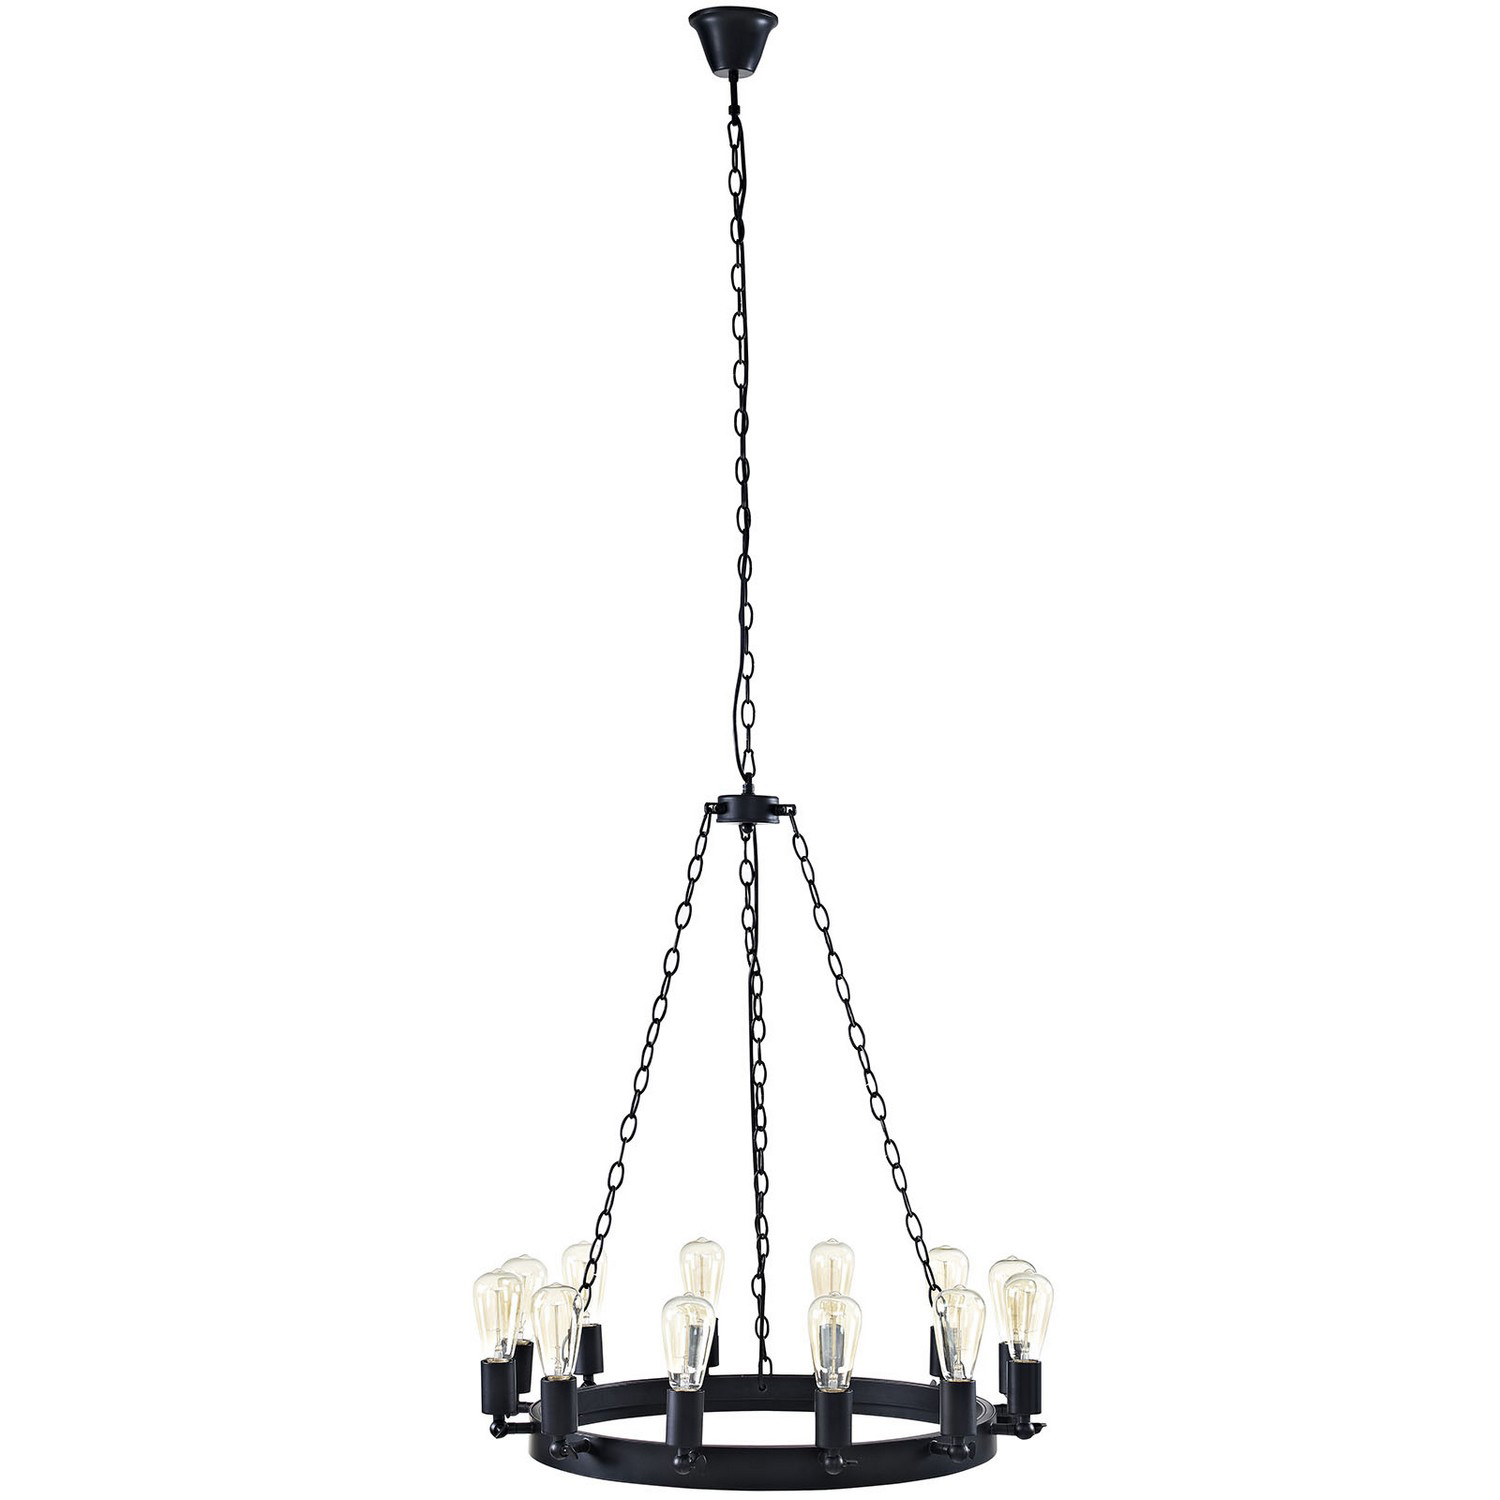 Modway Teleport 29-inch Chandelier - Brown